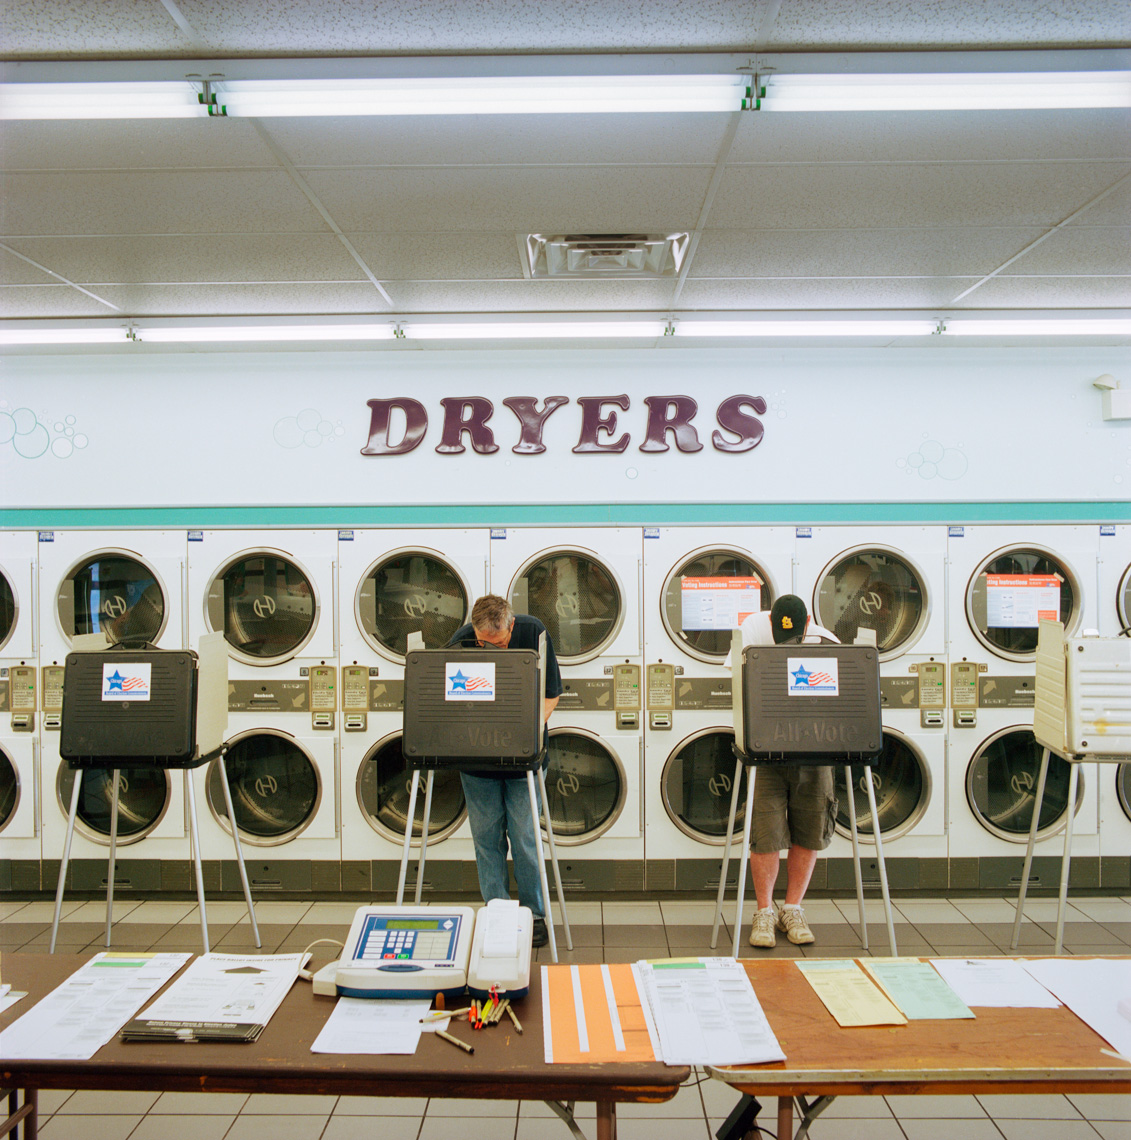 Image: © Ryan Donnell, The Polling Place Project, Laundromat, Chicago